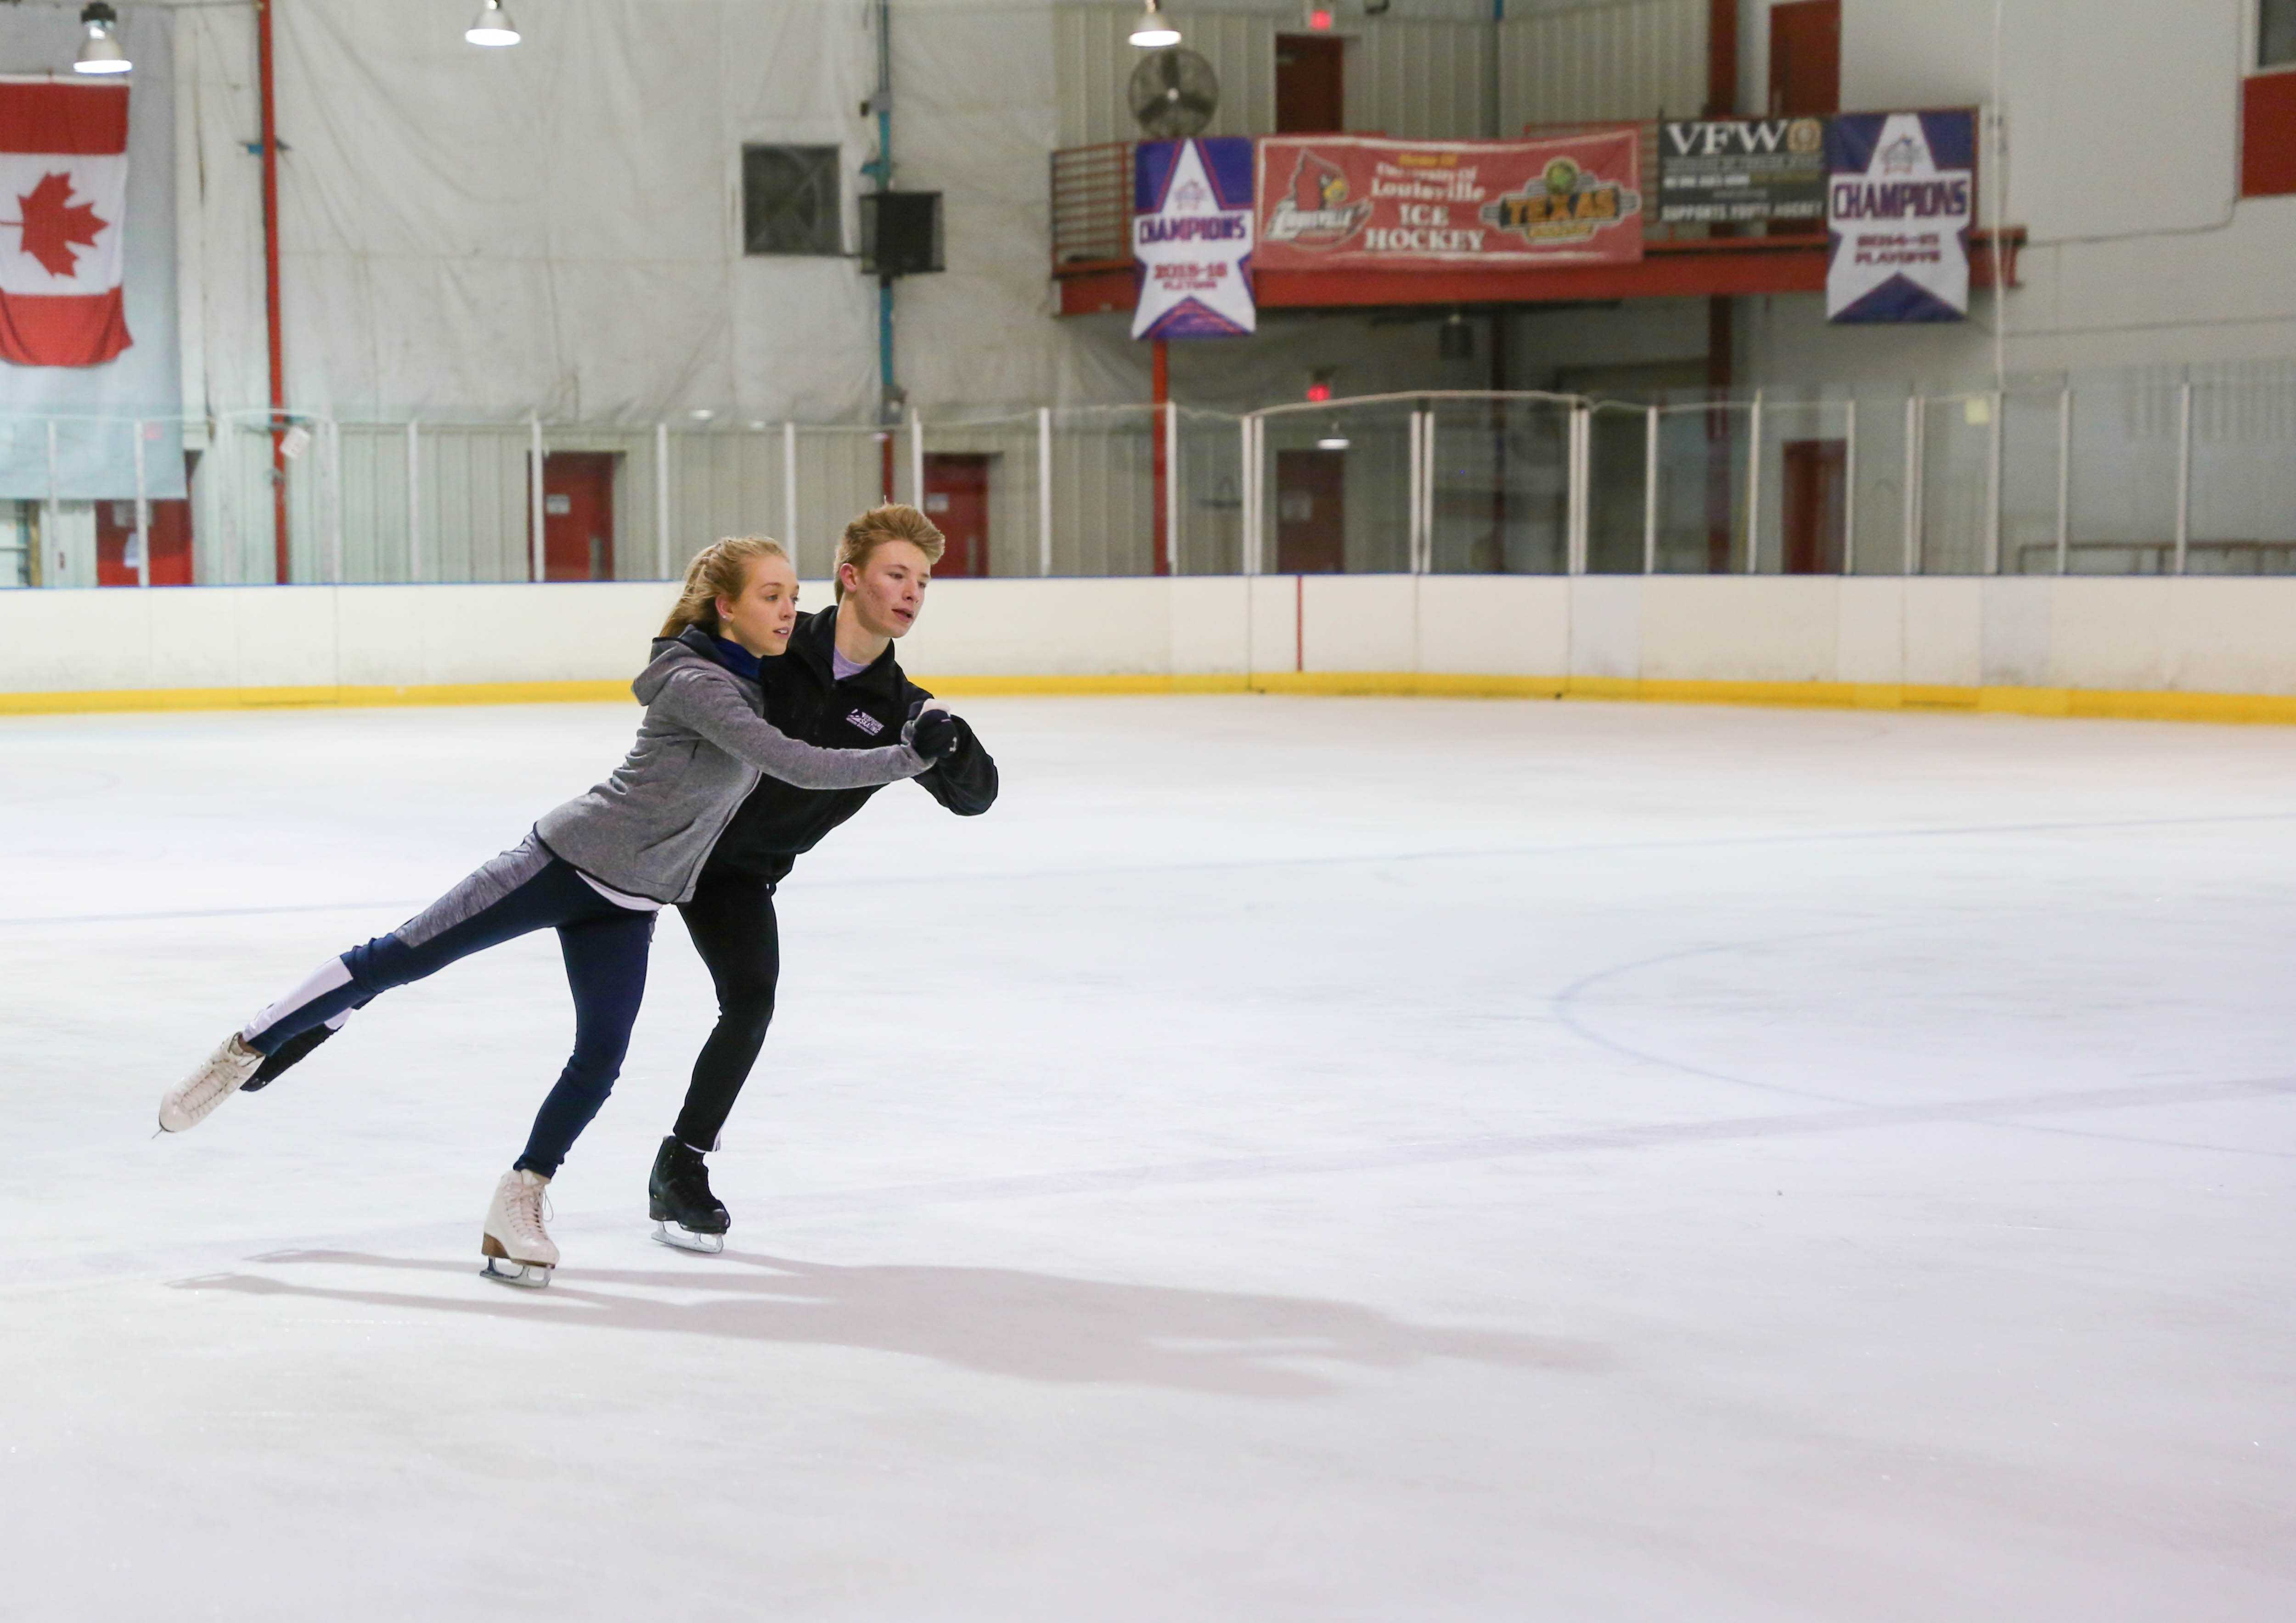 Two high school siblings ice skate their way to national placement